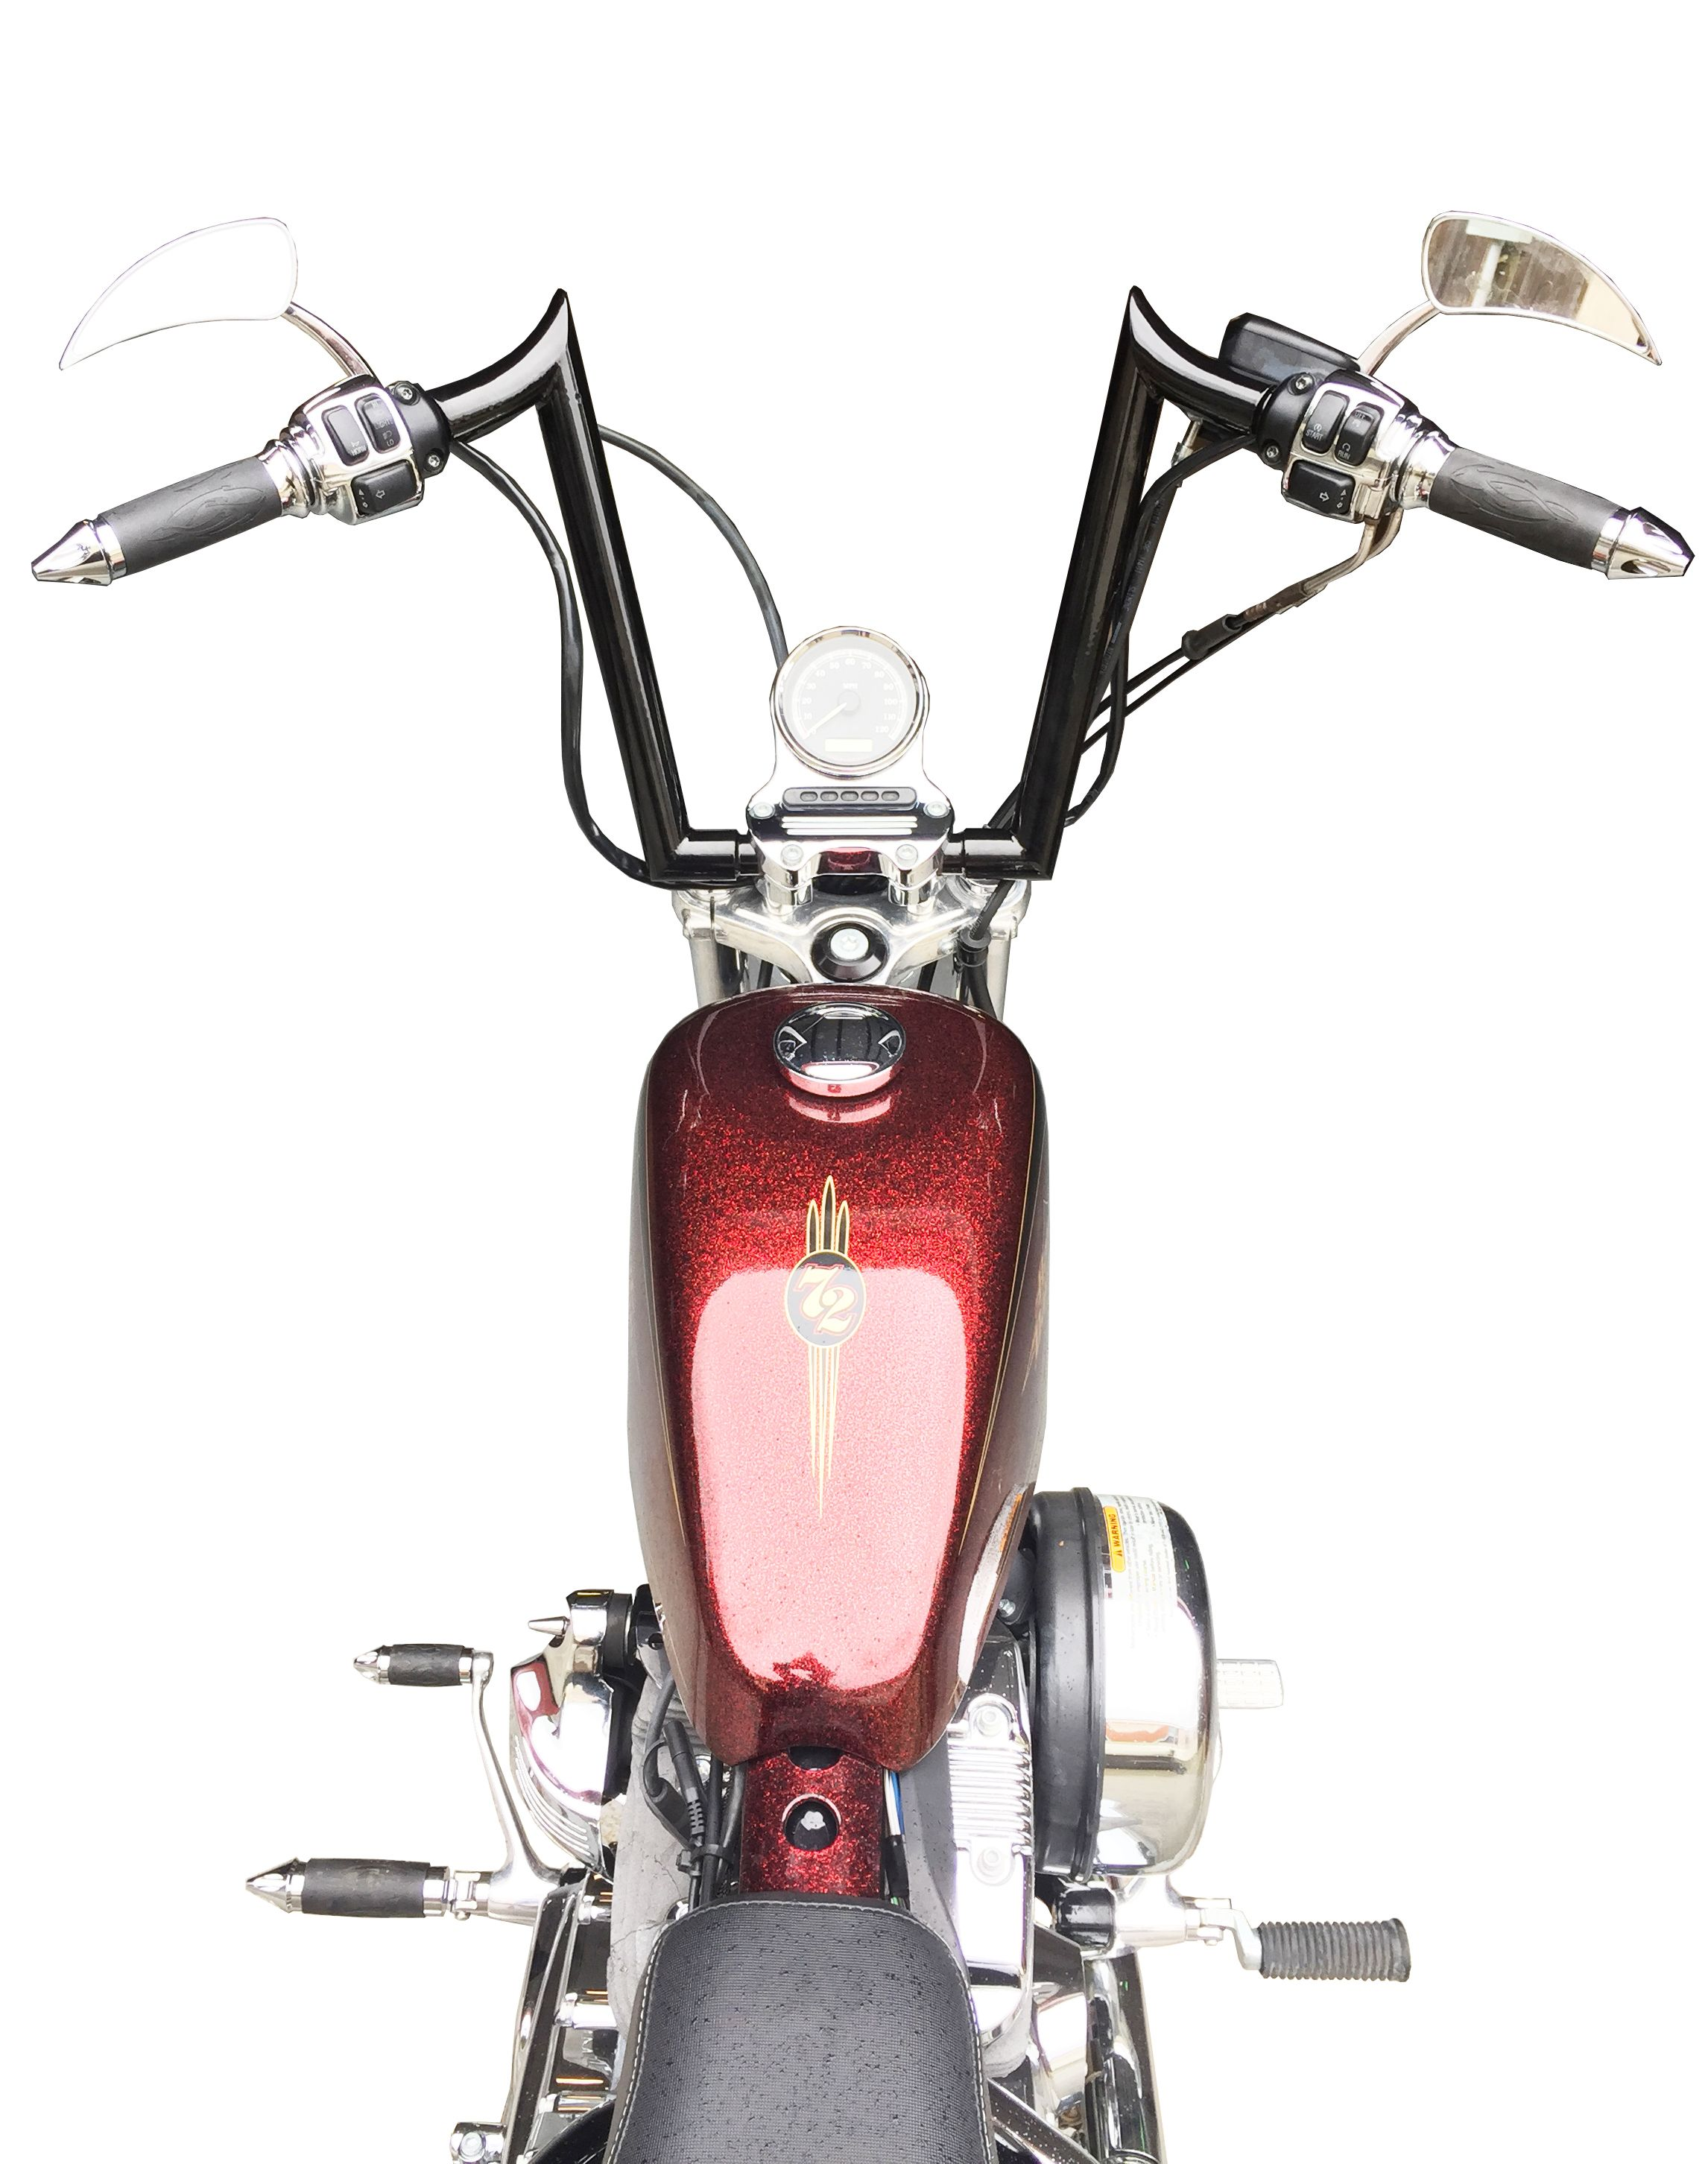 FMB CHOPPERS Came up with some bars that fit harley